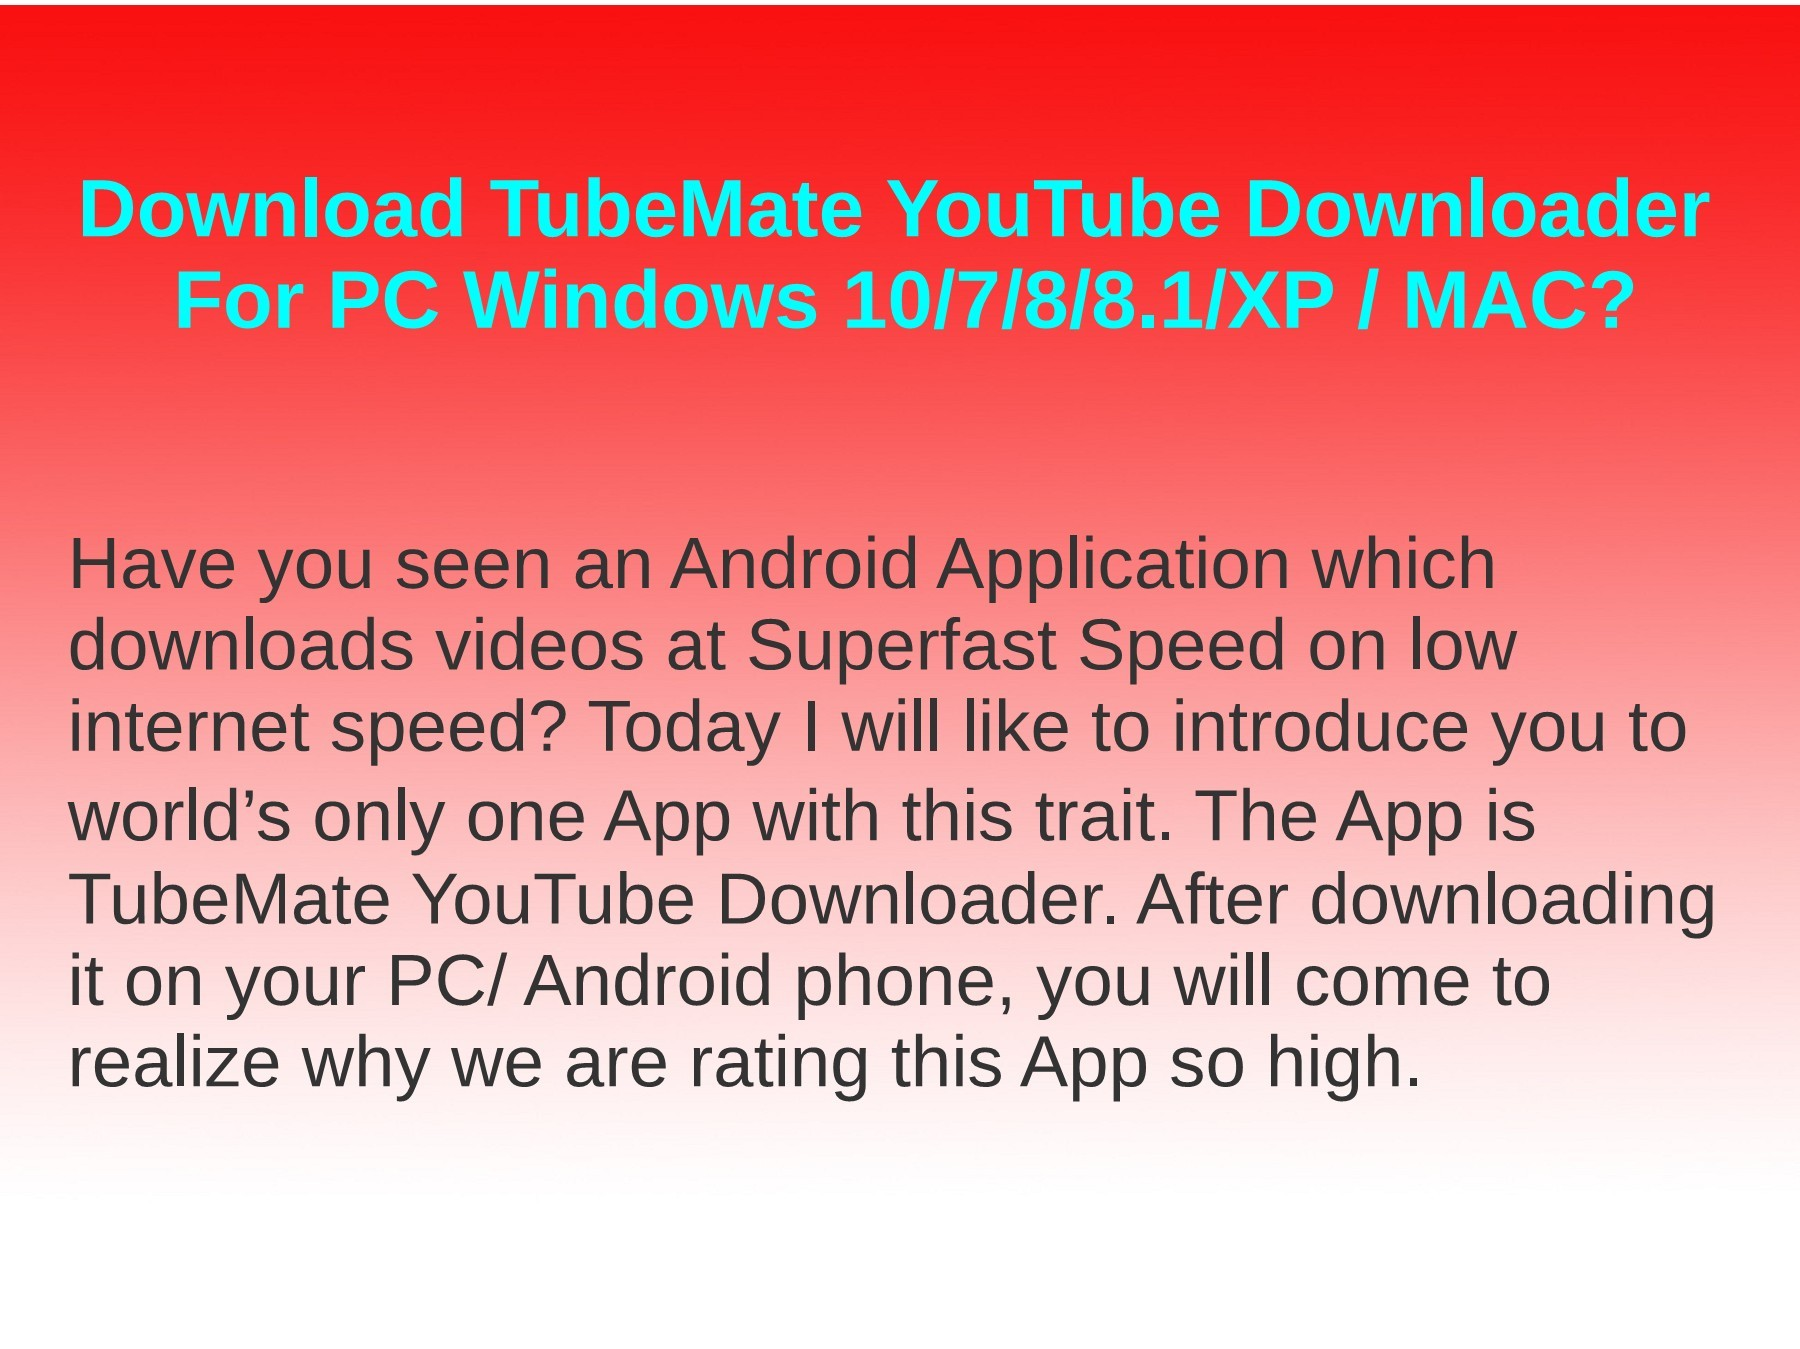 Download TubeMate YouTube Downloader for PC Windows 10/7/8